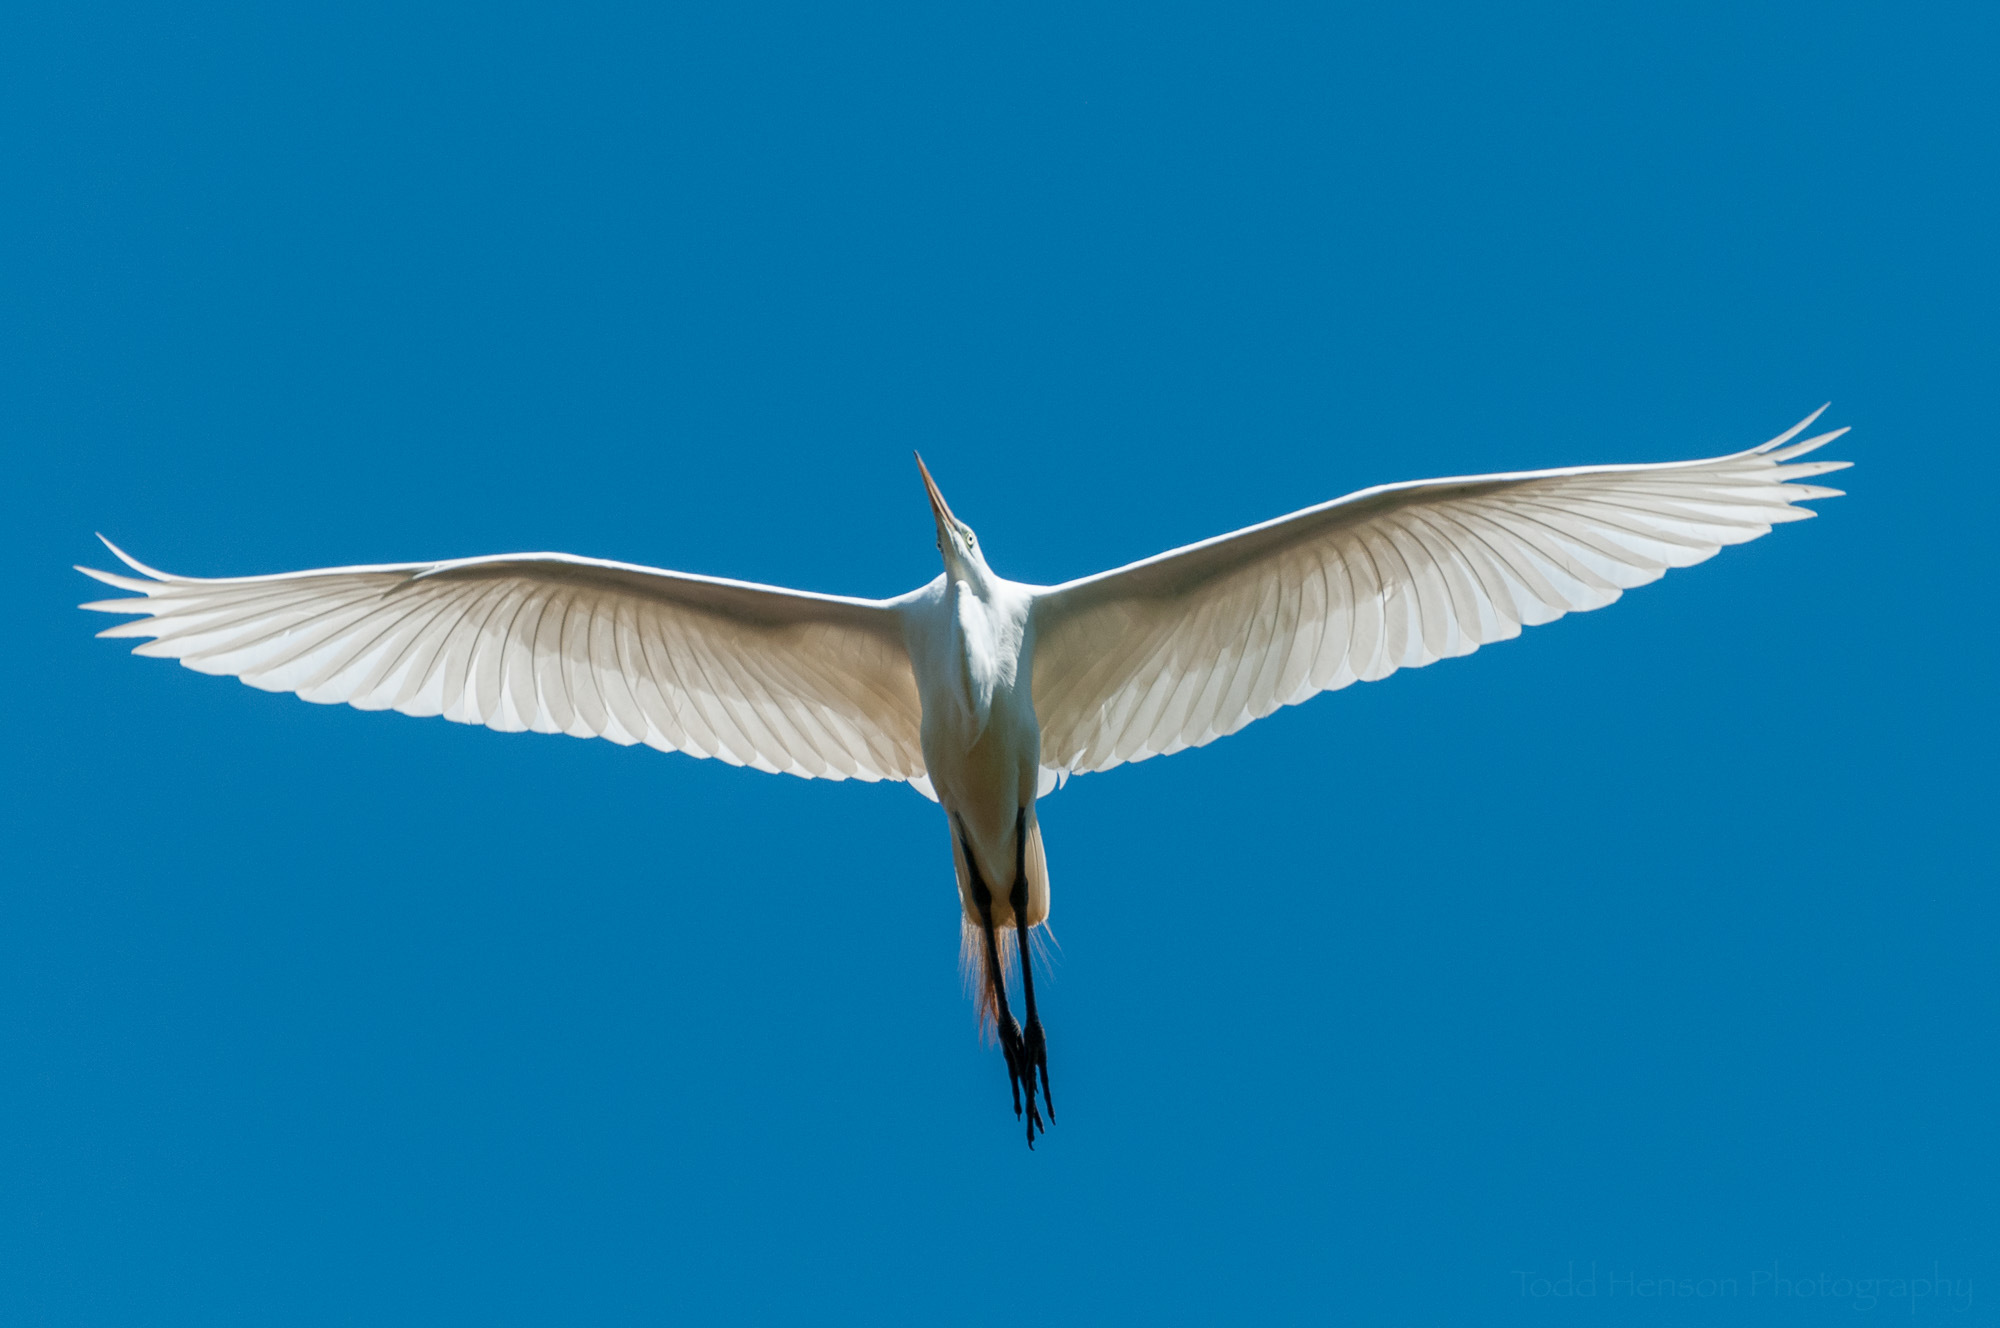 Great Egret flying almost directly overhead against clear blue sky